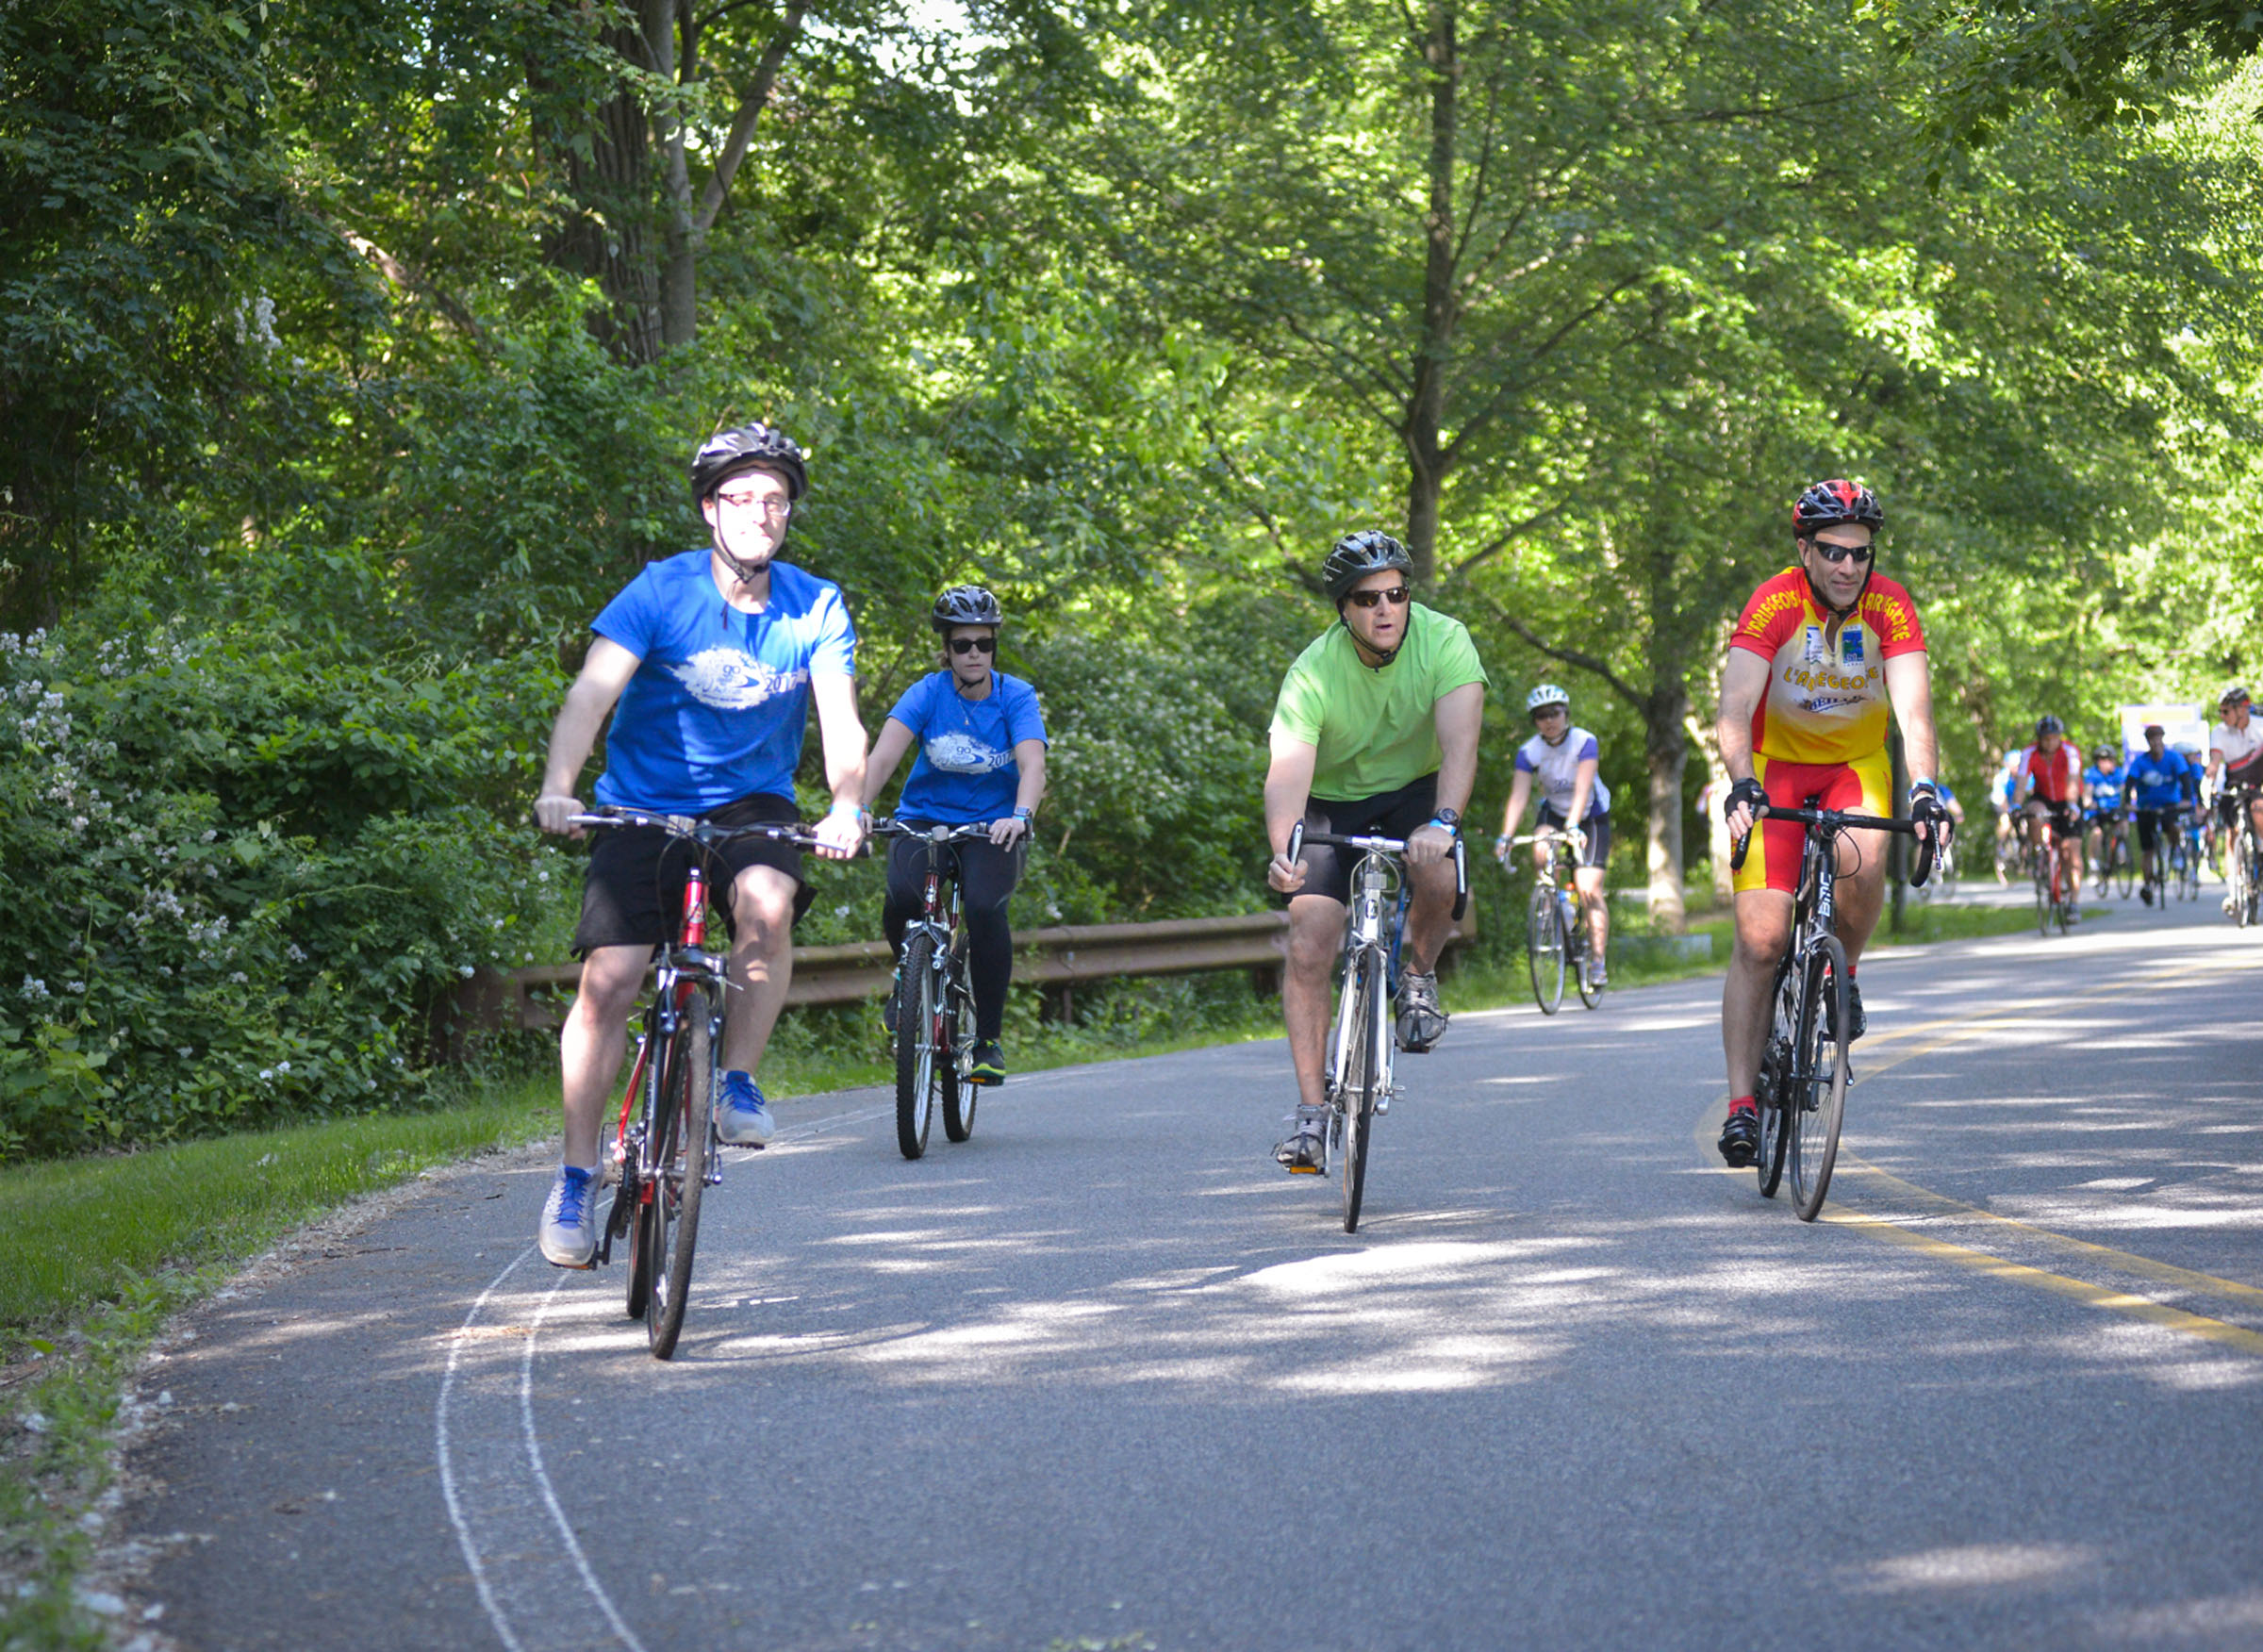 2017-06-04 GTD4A Charity Bike Ride - BCC - Paramus NJ-1886.jpg